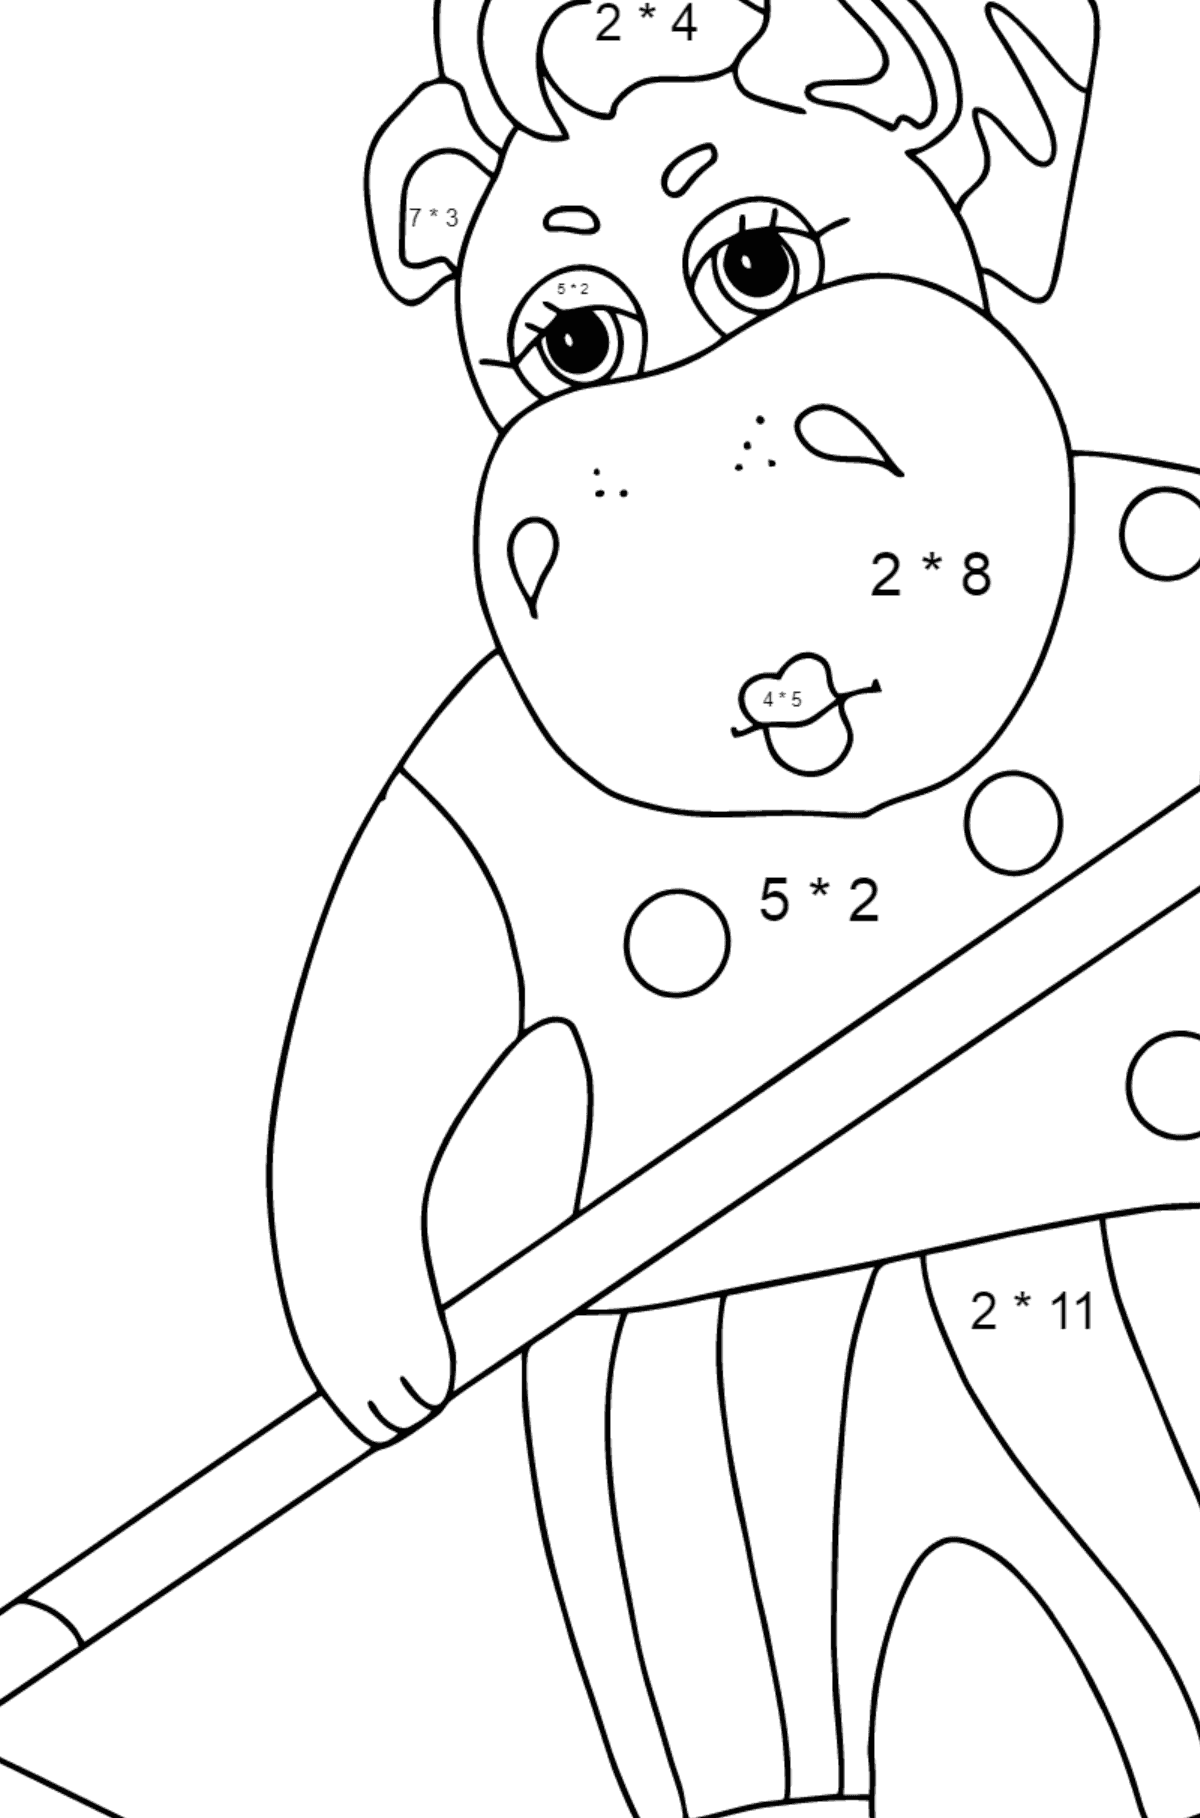 Coloring Page - A Hippo is Collecting Autumn Leaves for Kids  - Color by Number Multiplication